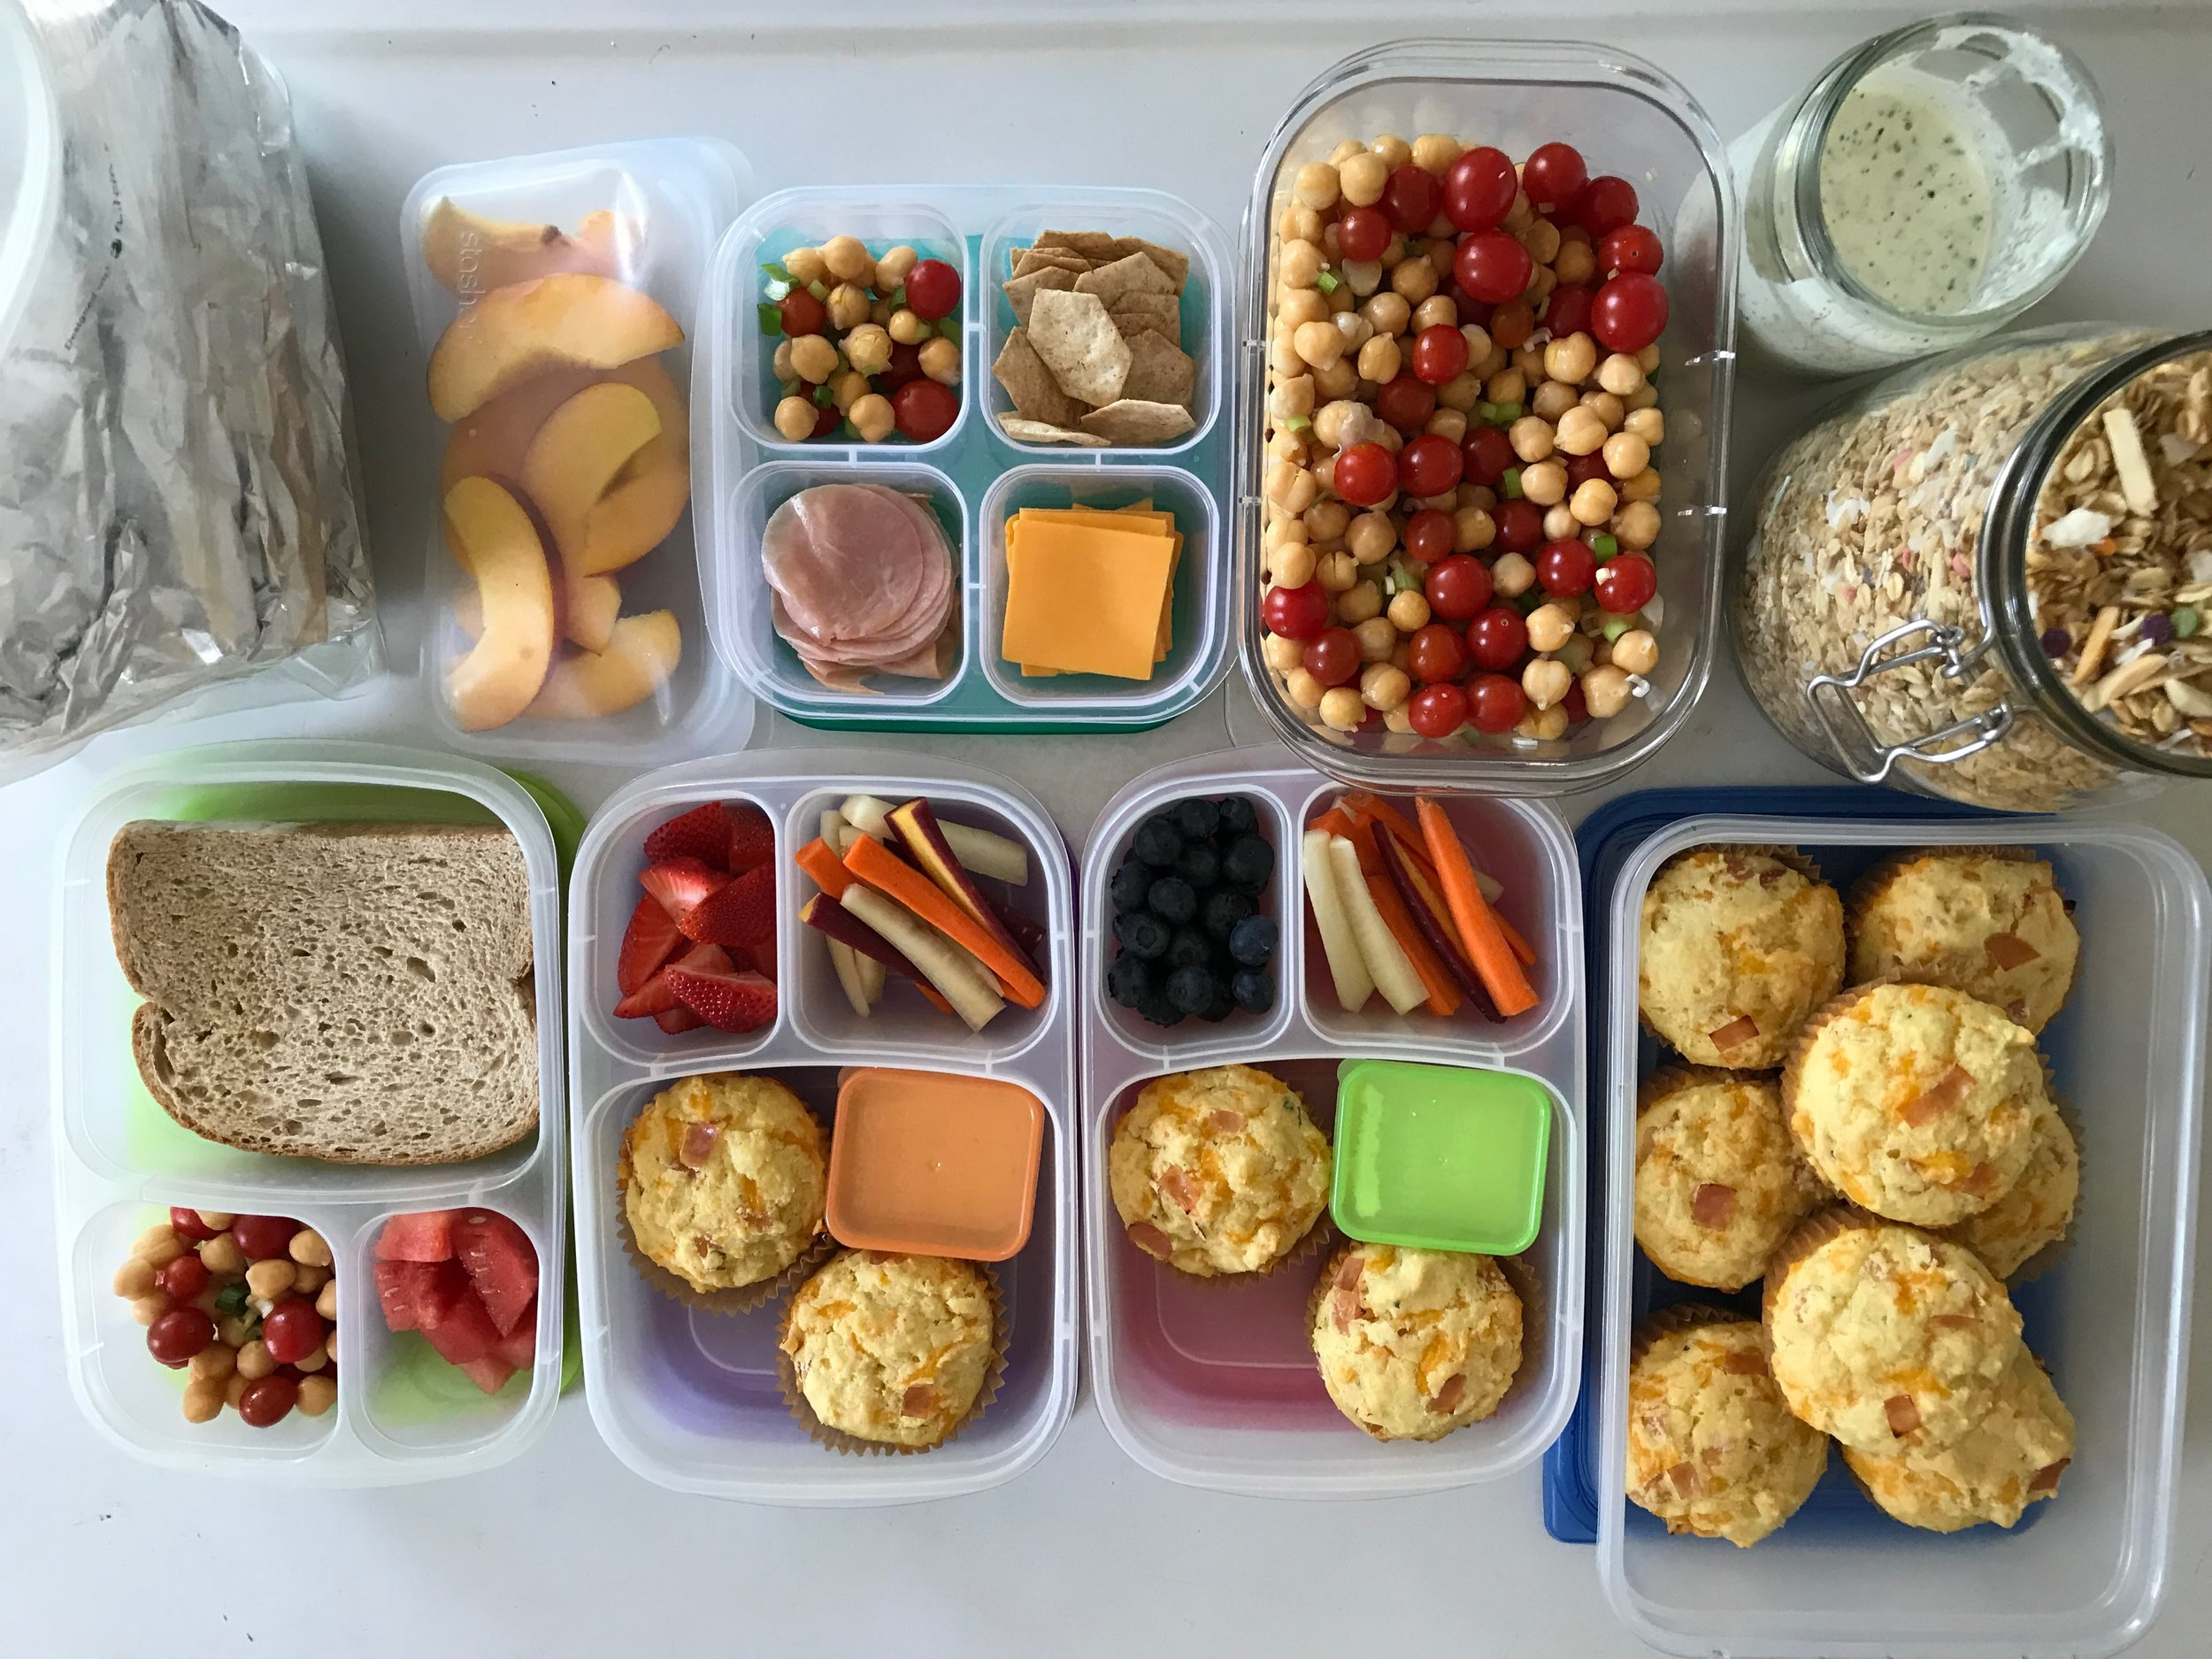 Tips for meal planning and preparing meals for families